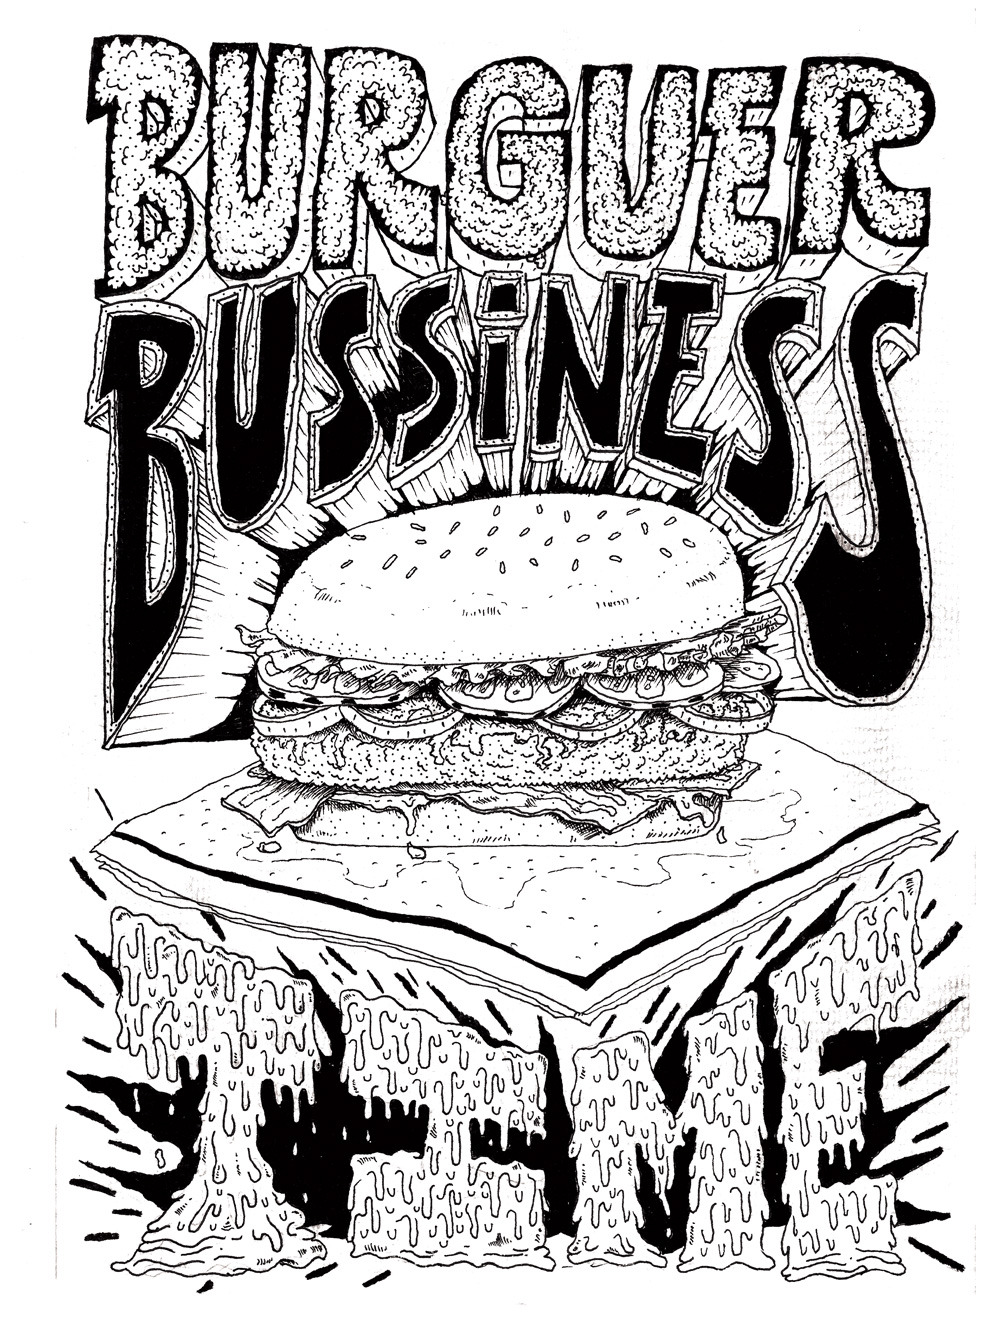 Burguer Bussiness Time o Burger Bussiness Time o Vurger Bisnez Taim